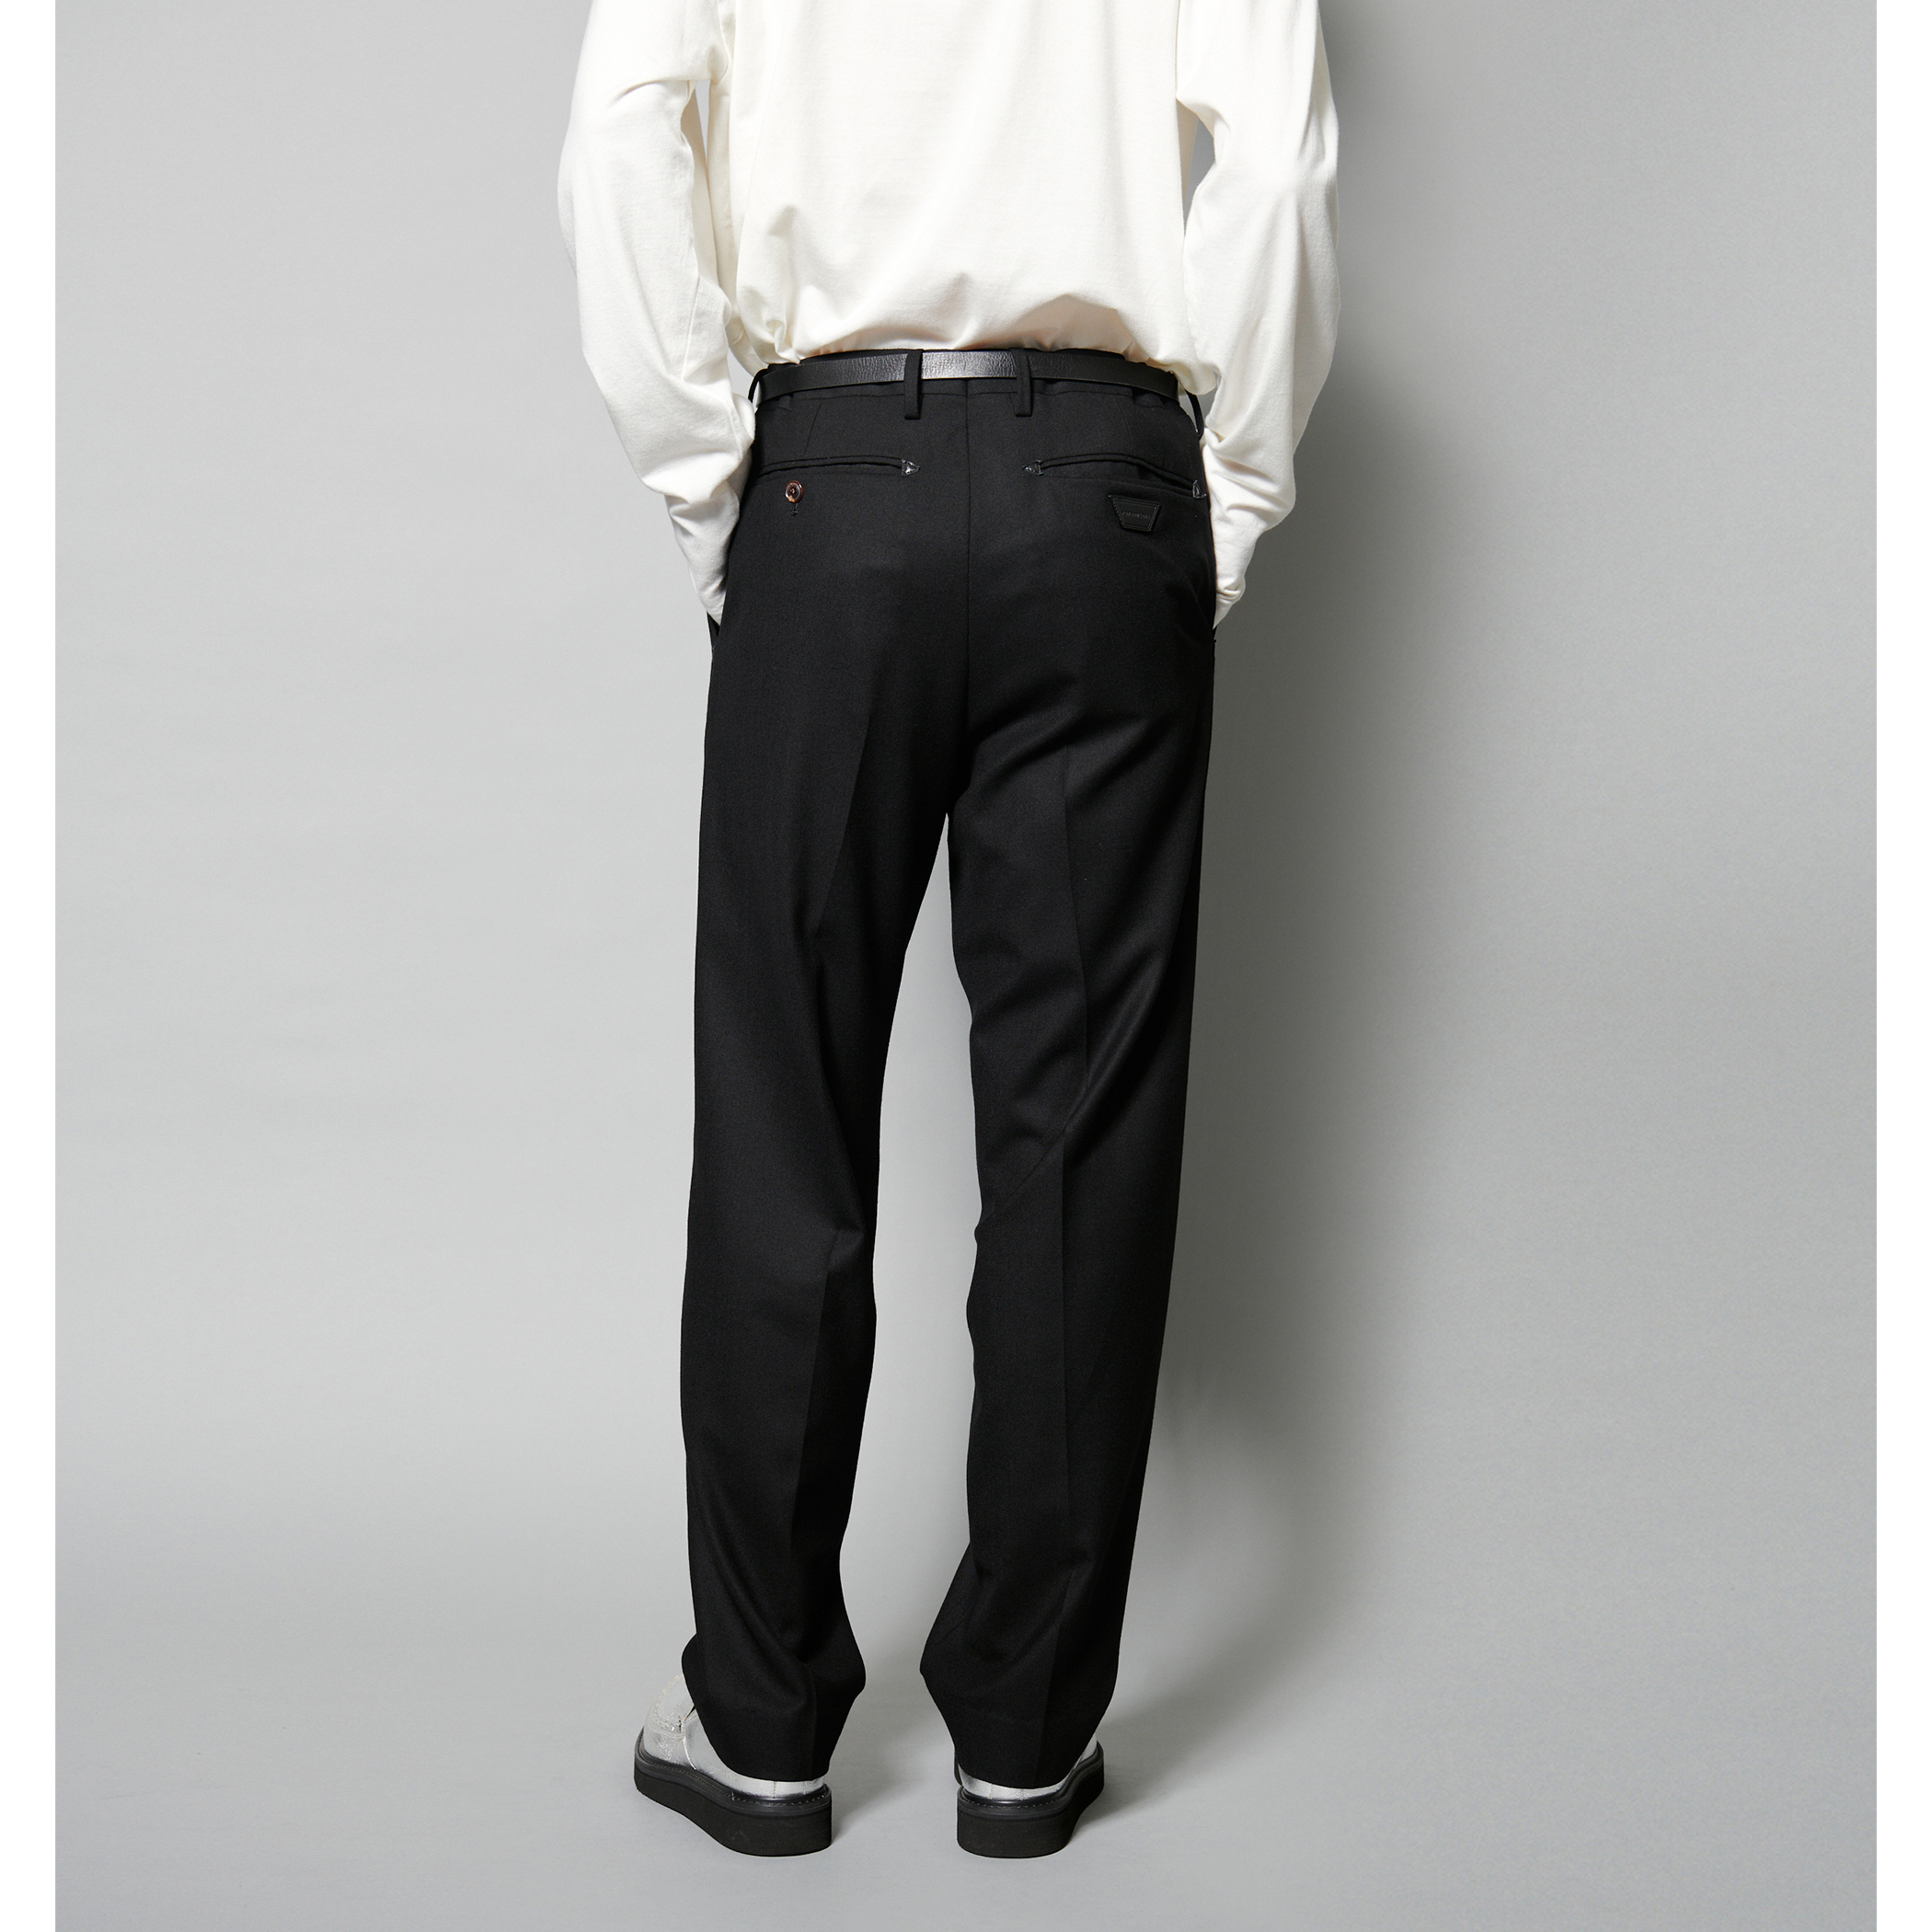 ADAM SUIT SOLID TROUSERS 詳細画像 Brown 3